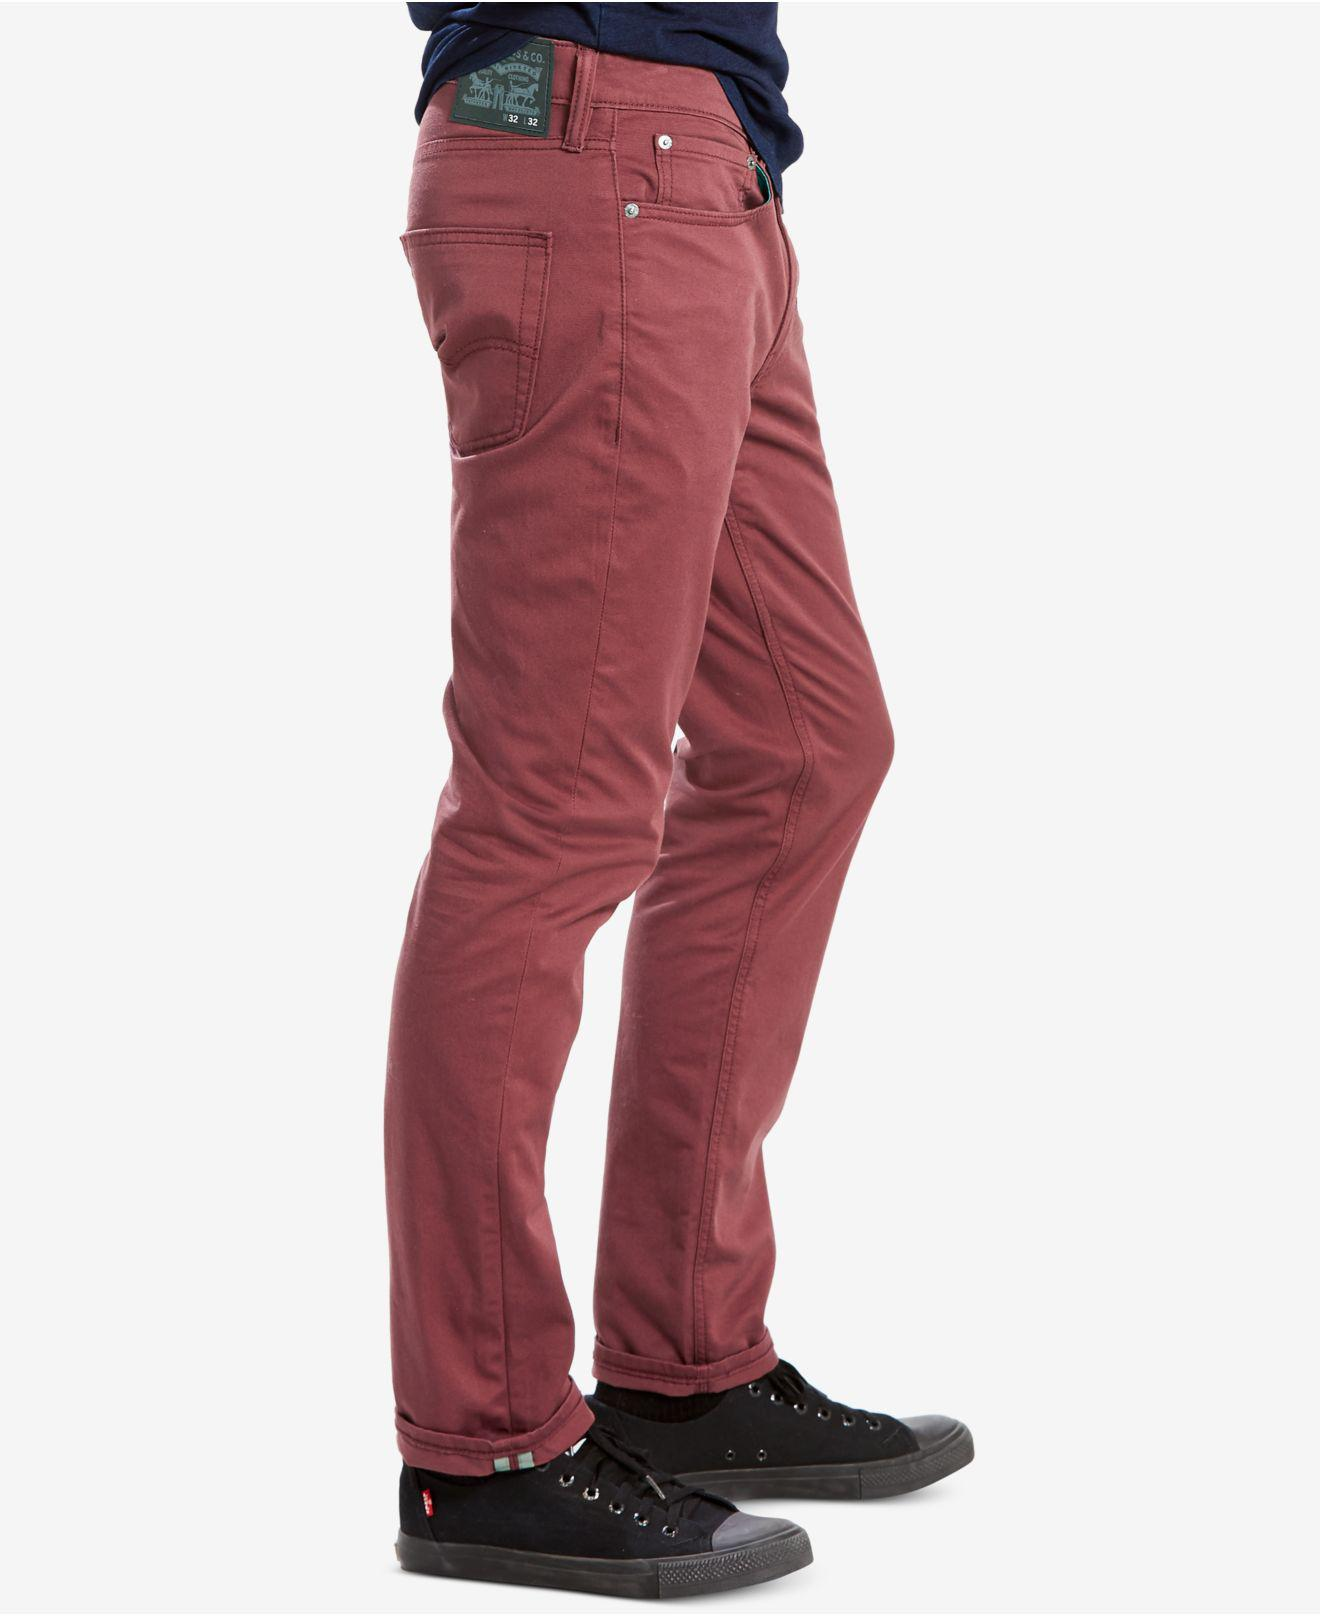 cb79e50d Levi's 511 Slim-fit Commuter Jeans in Red for Men - Lyst